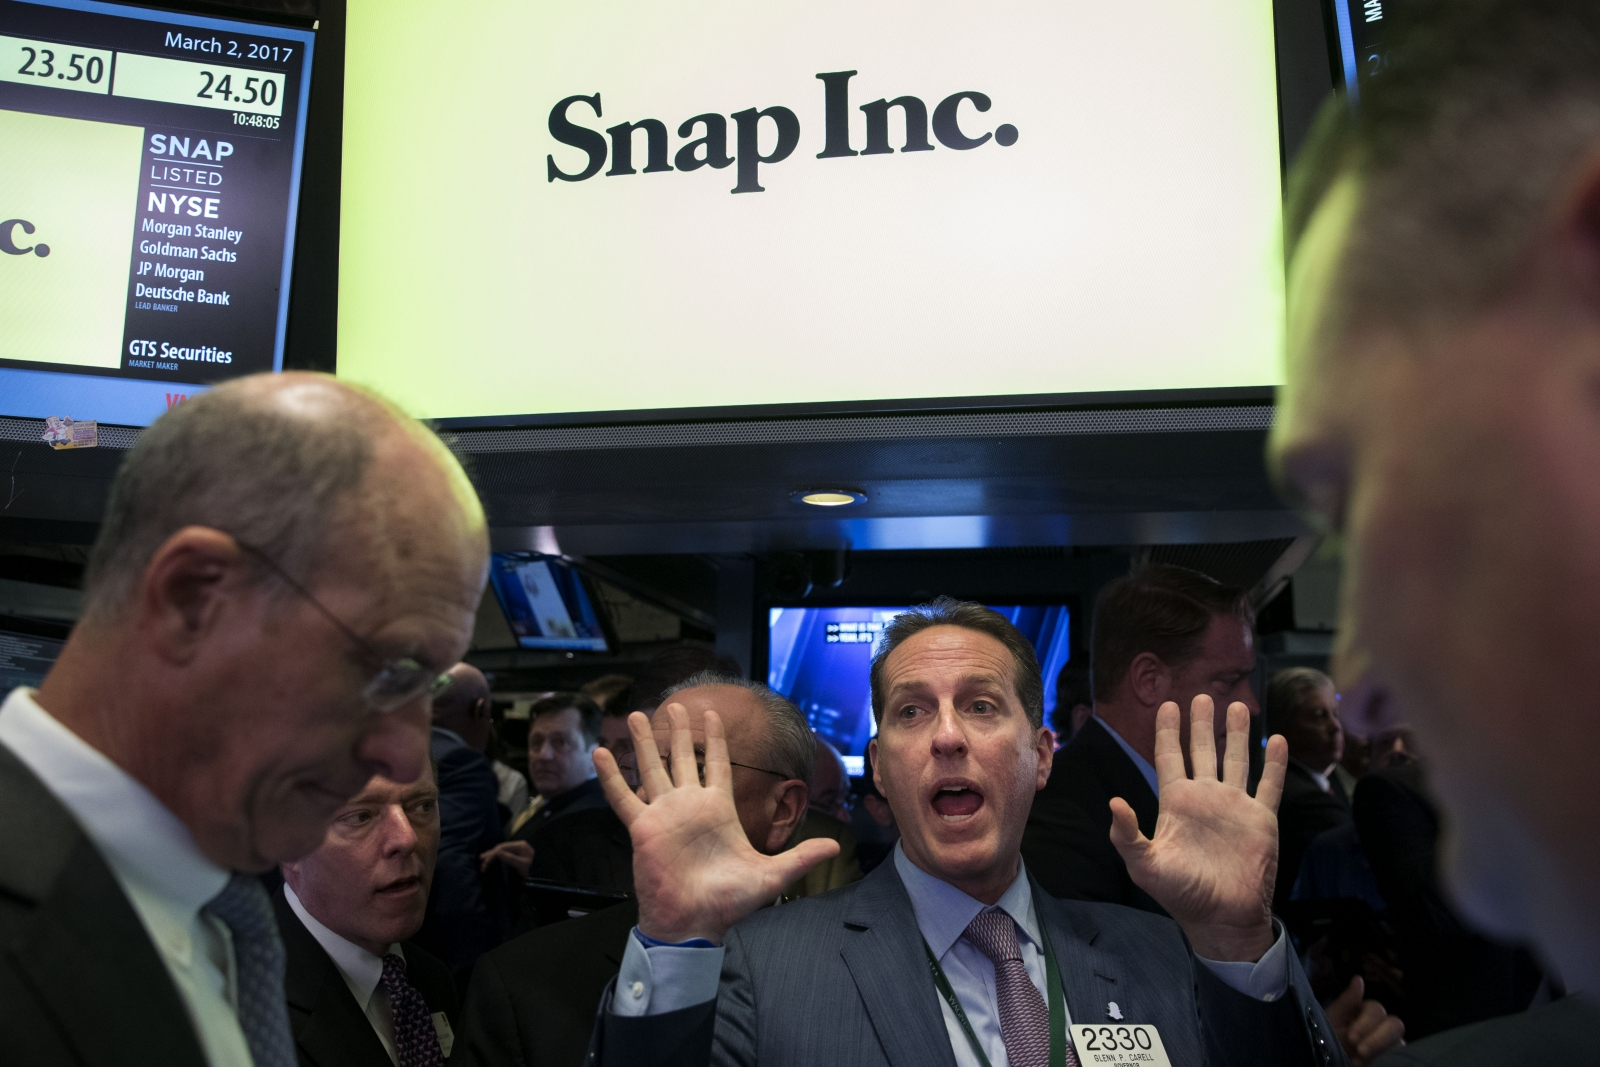 What was behind snaps high ipo